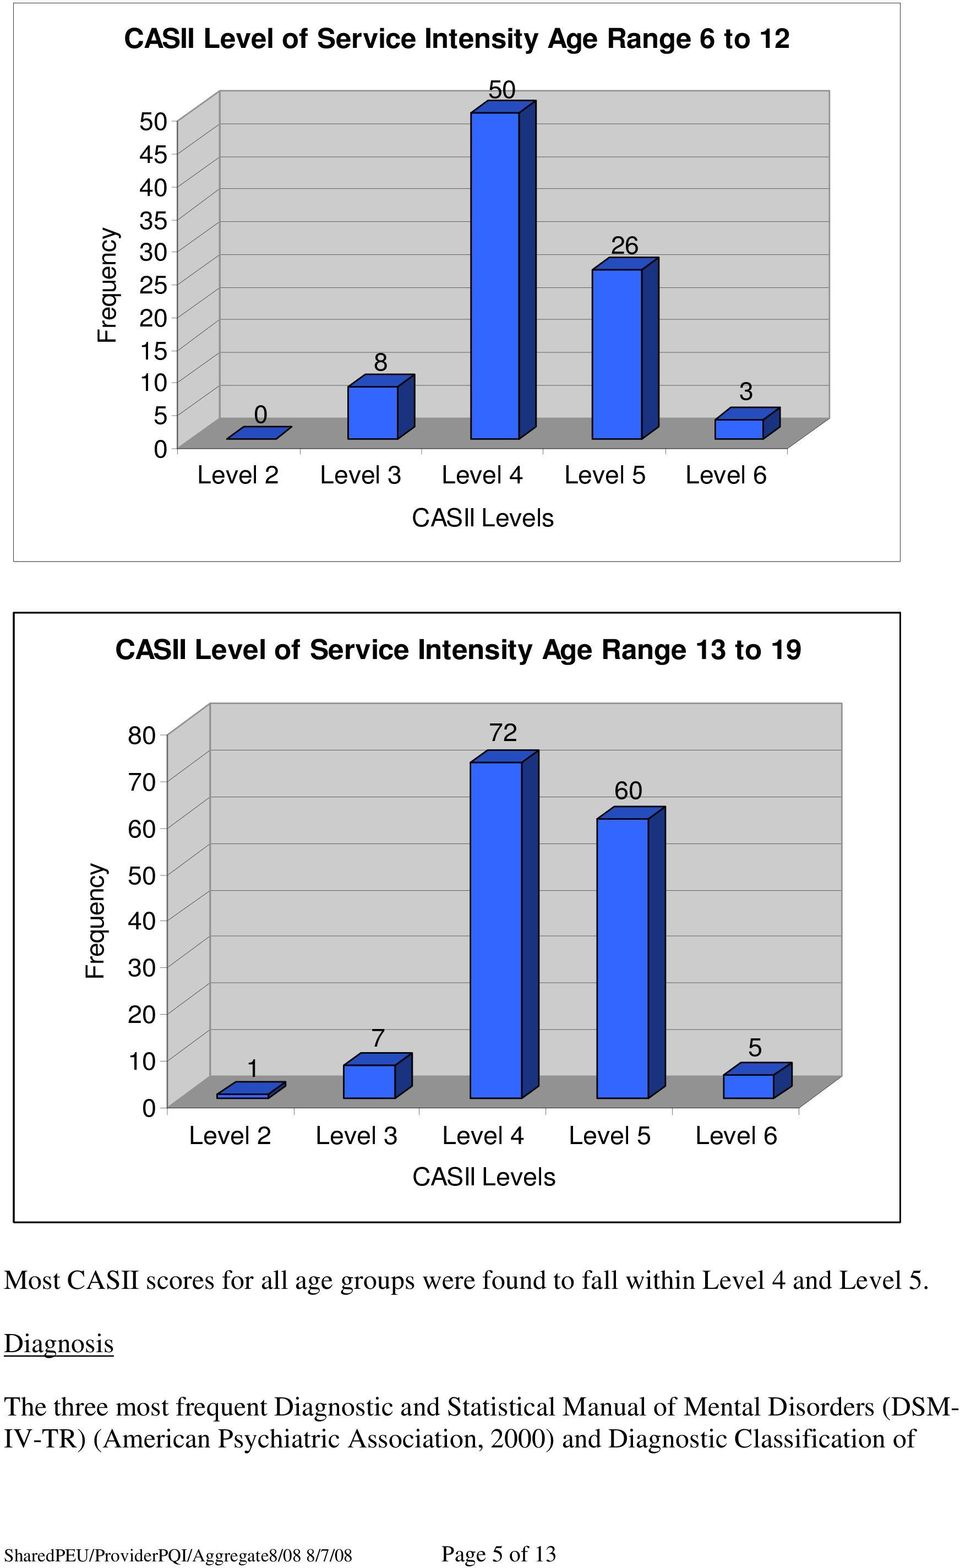 CASII scores for all age groups were found to fall within Level 4 and Level 5.